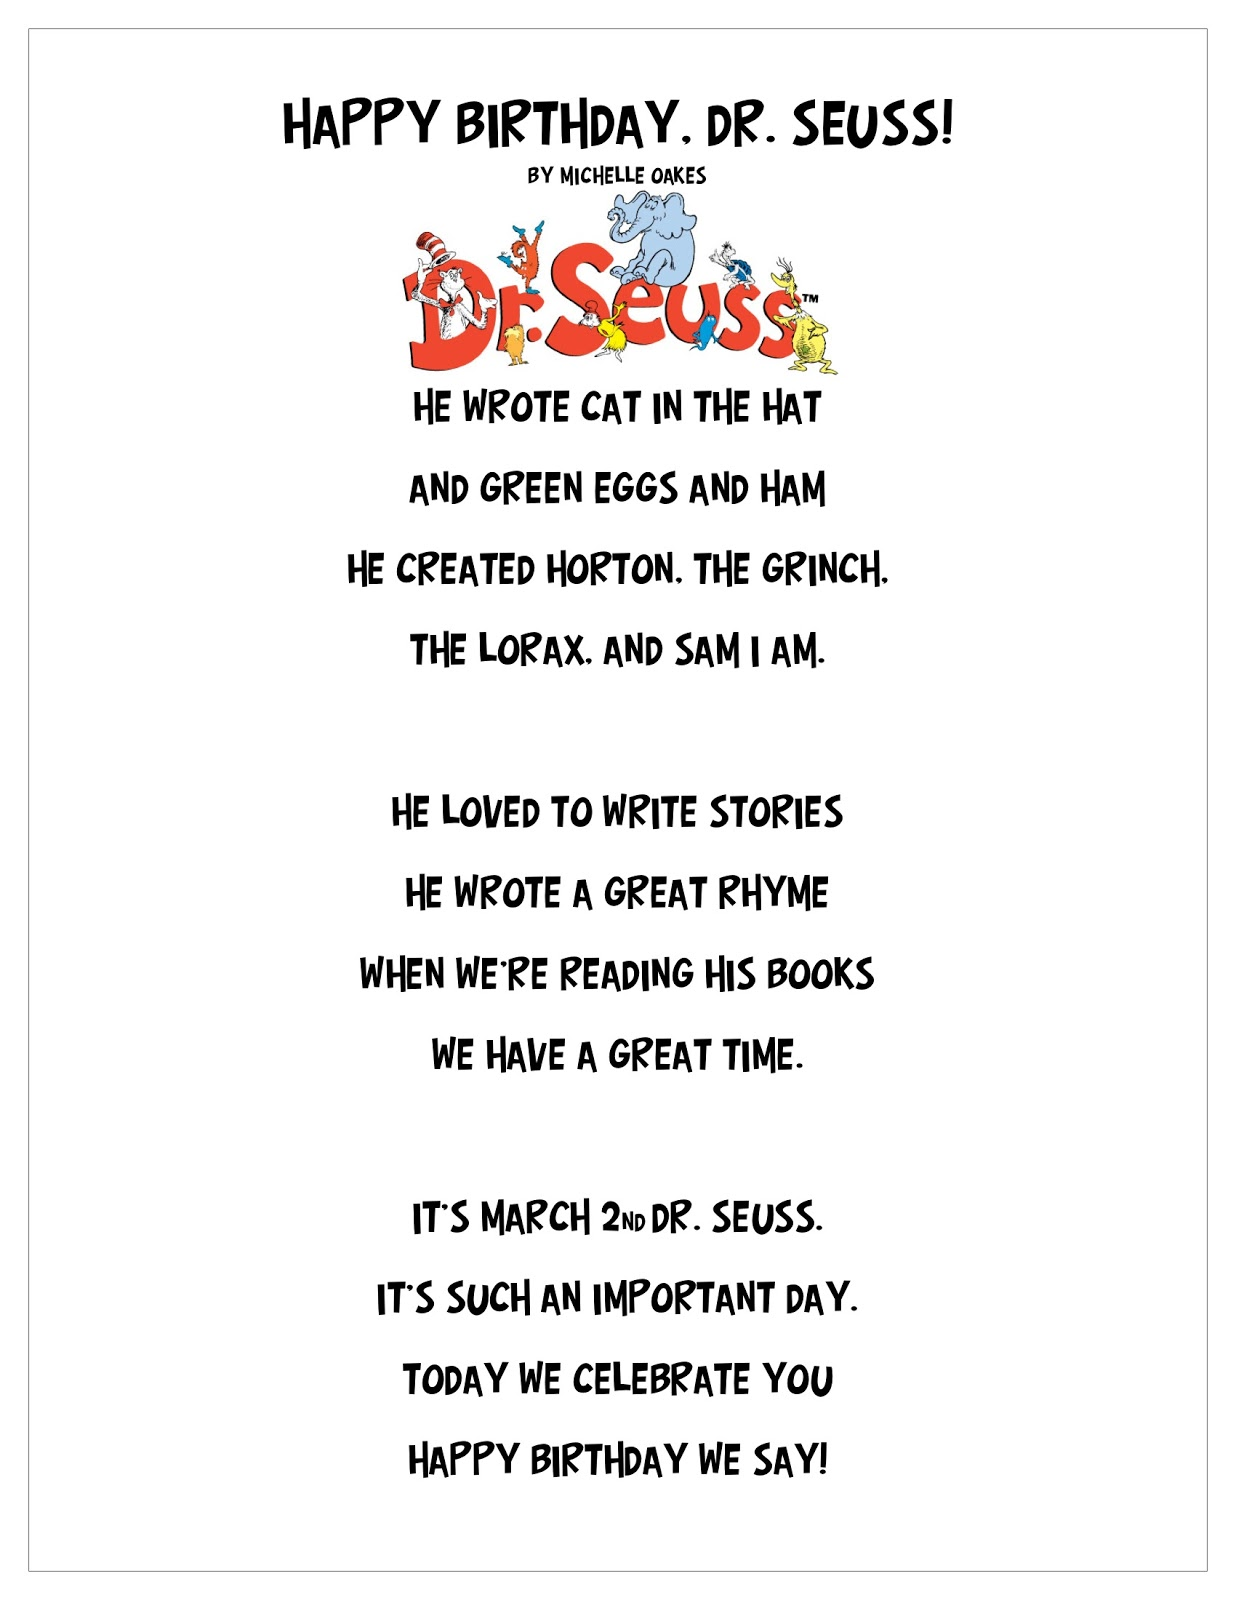 Dr Seuss Happy Birthday To You Quotes 7 Quotes Links